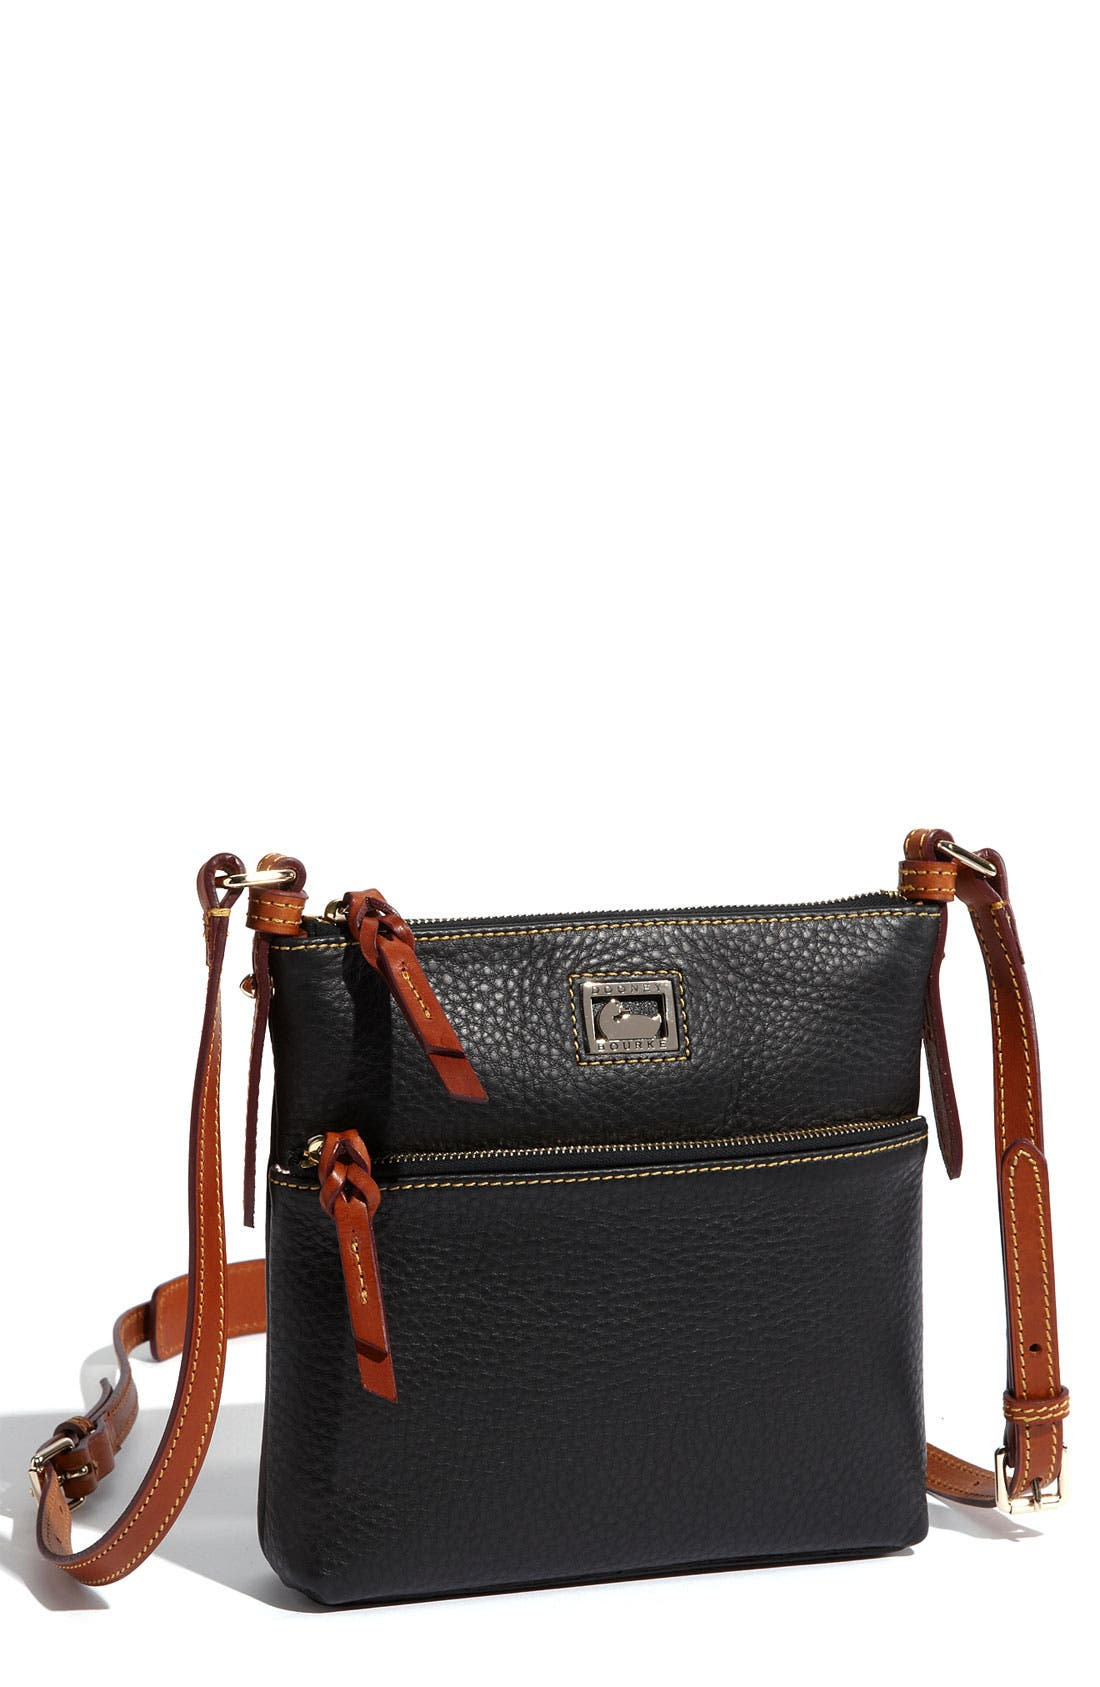 Alternate Image 1 Selected - Dooney & Bourke 'Dillen II Letter Carrier' Crossbody Bag (Online Only)